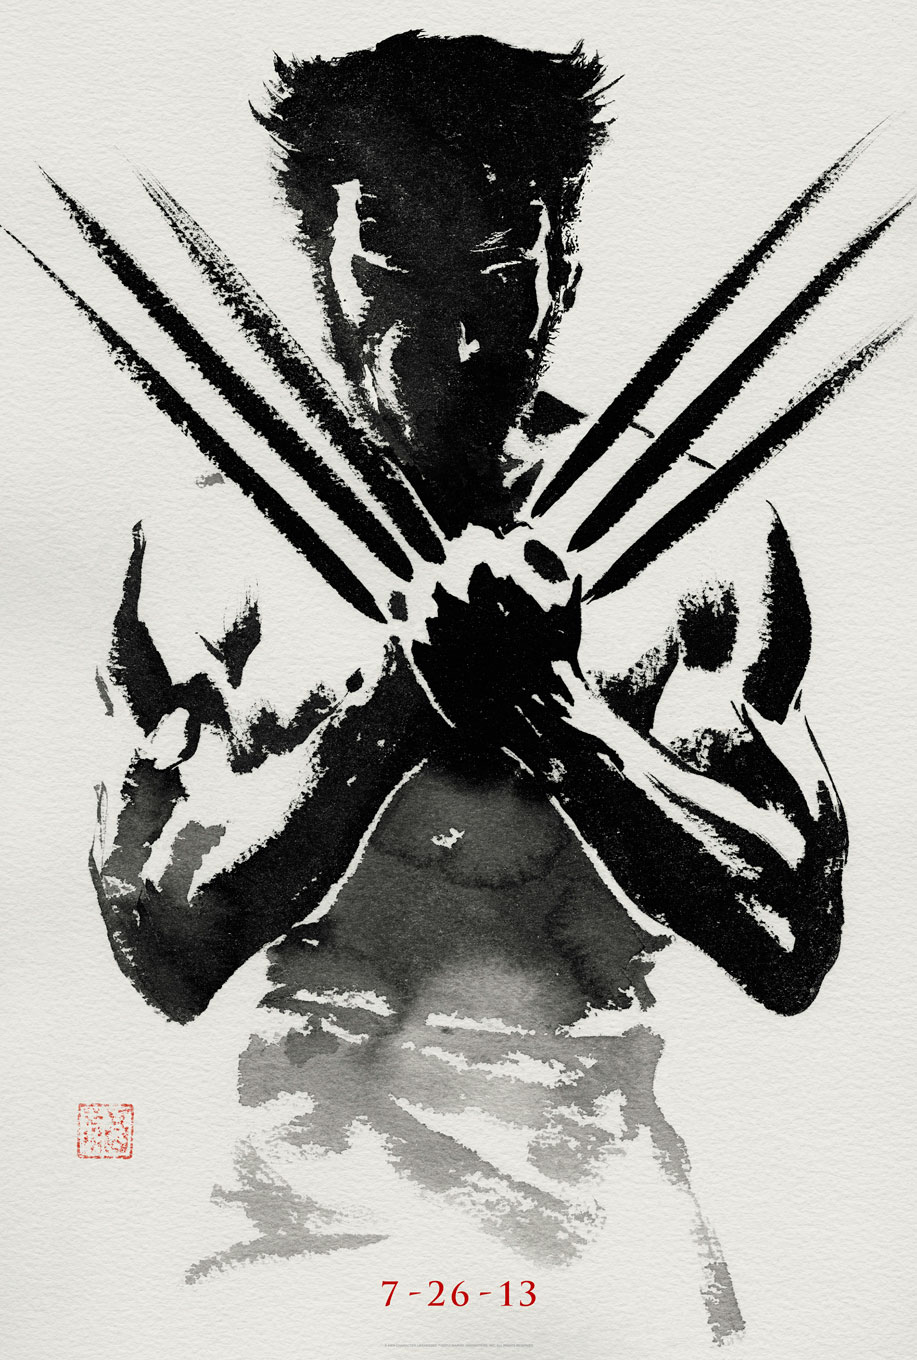 2013-07-30 The Wolverine